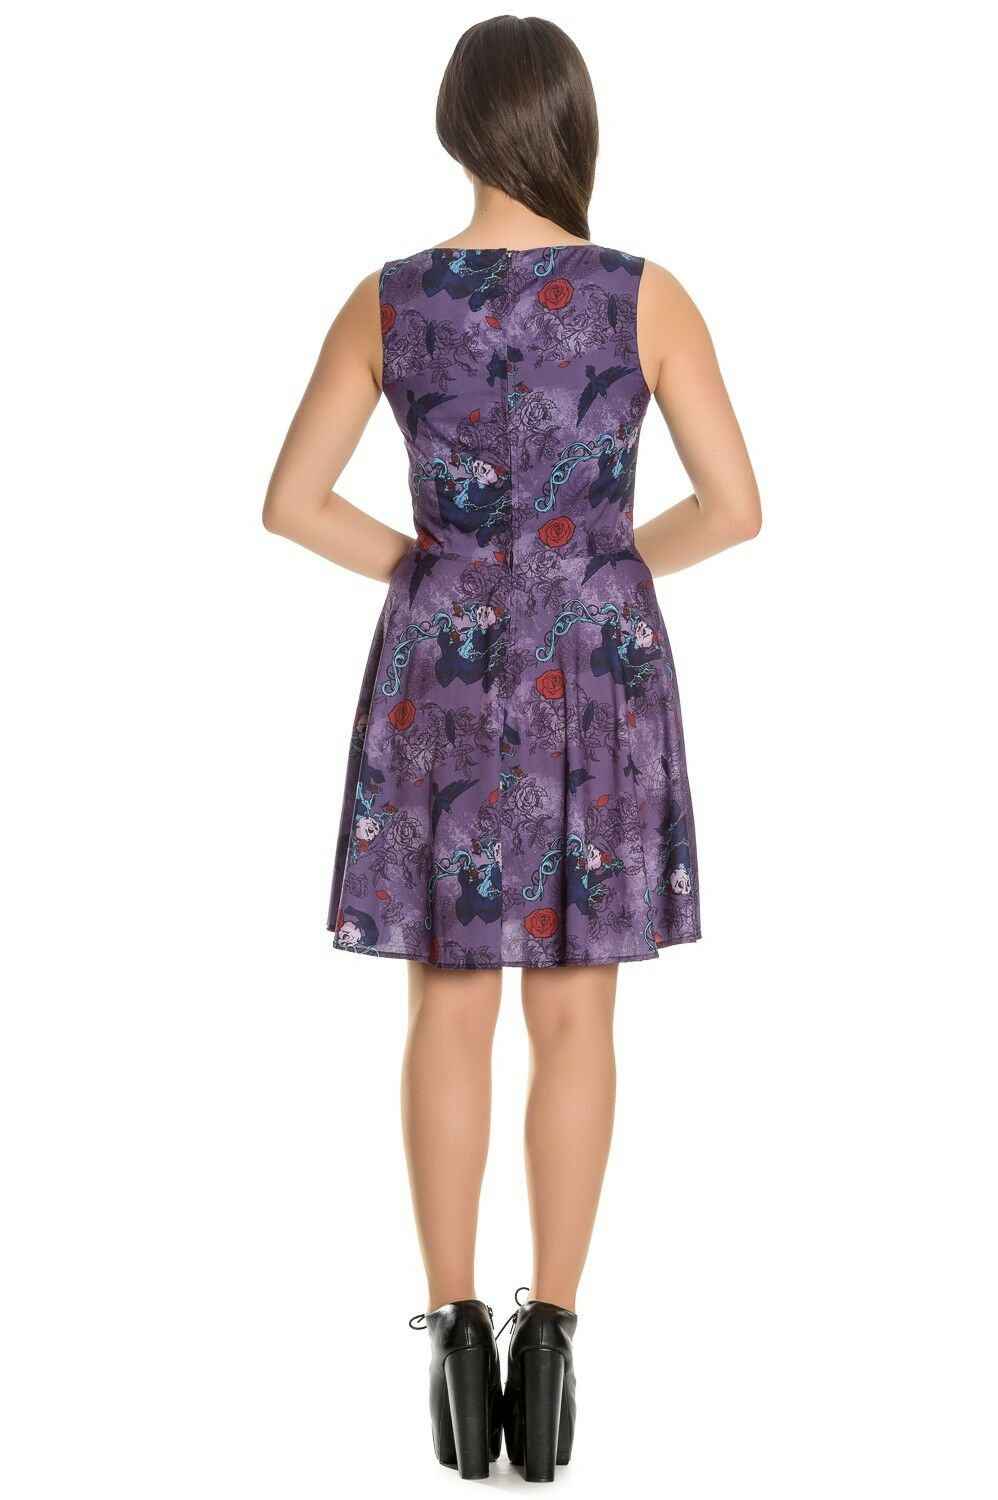 8d9d836f684 ... Hell Bunny Spin Doctor Skull Raven Purple Dress 8-22 Plus Plus Plus Size  Goth ...